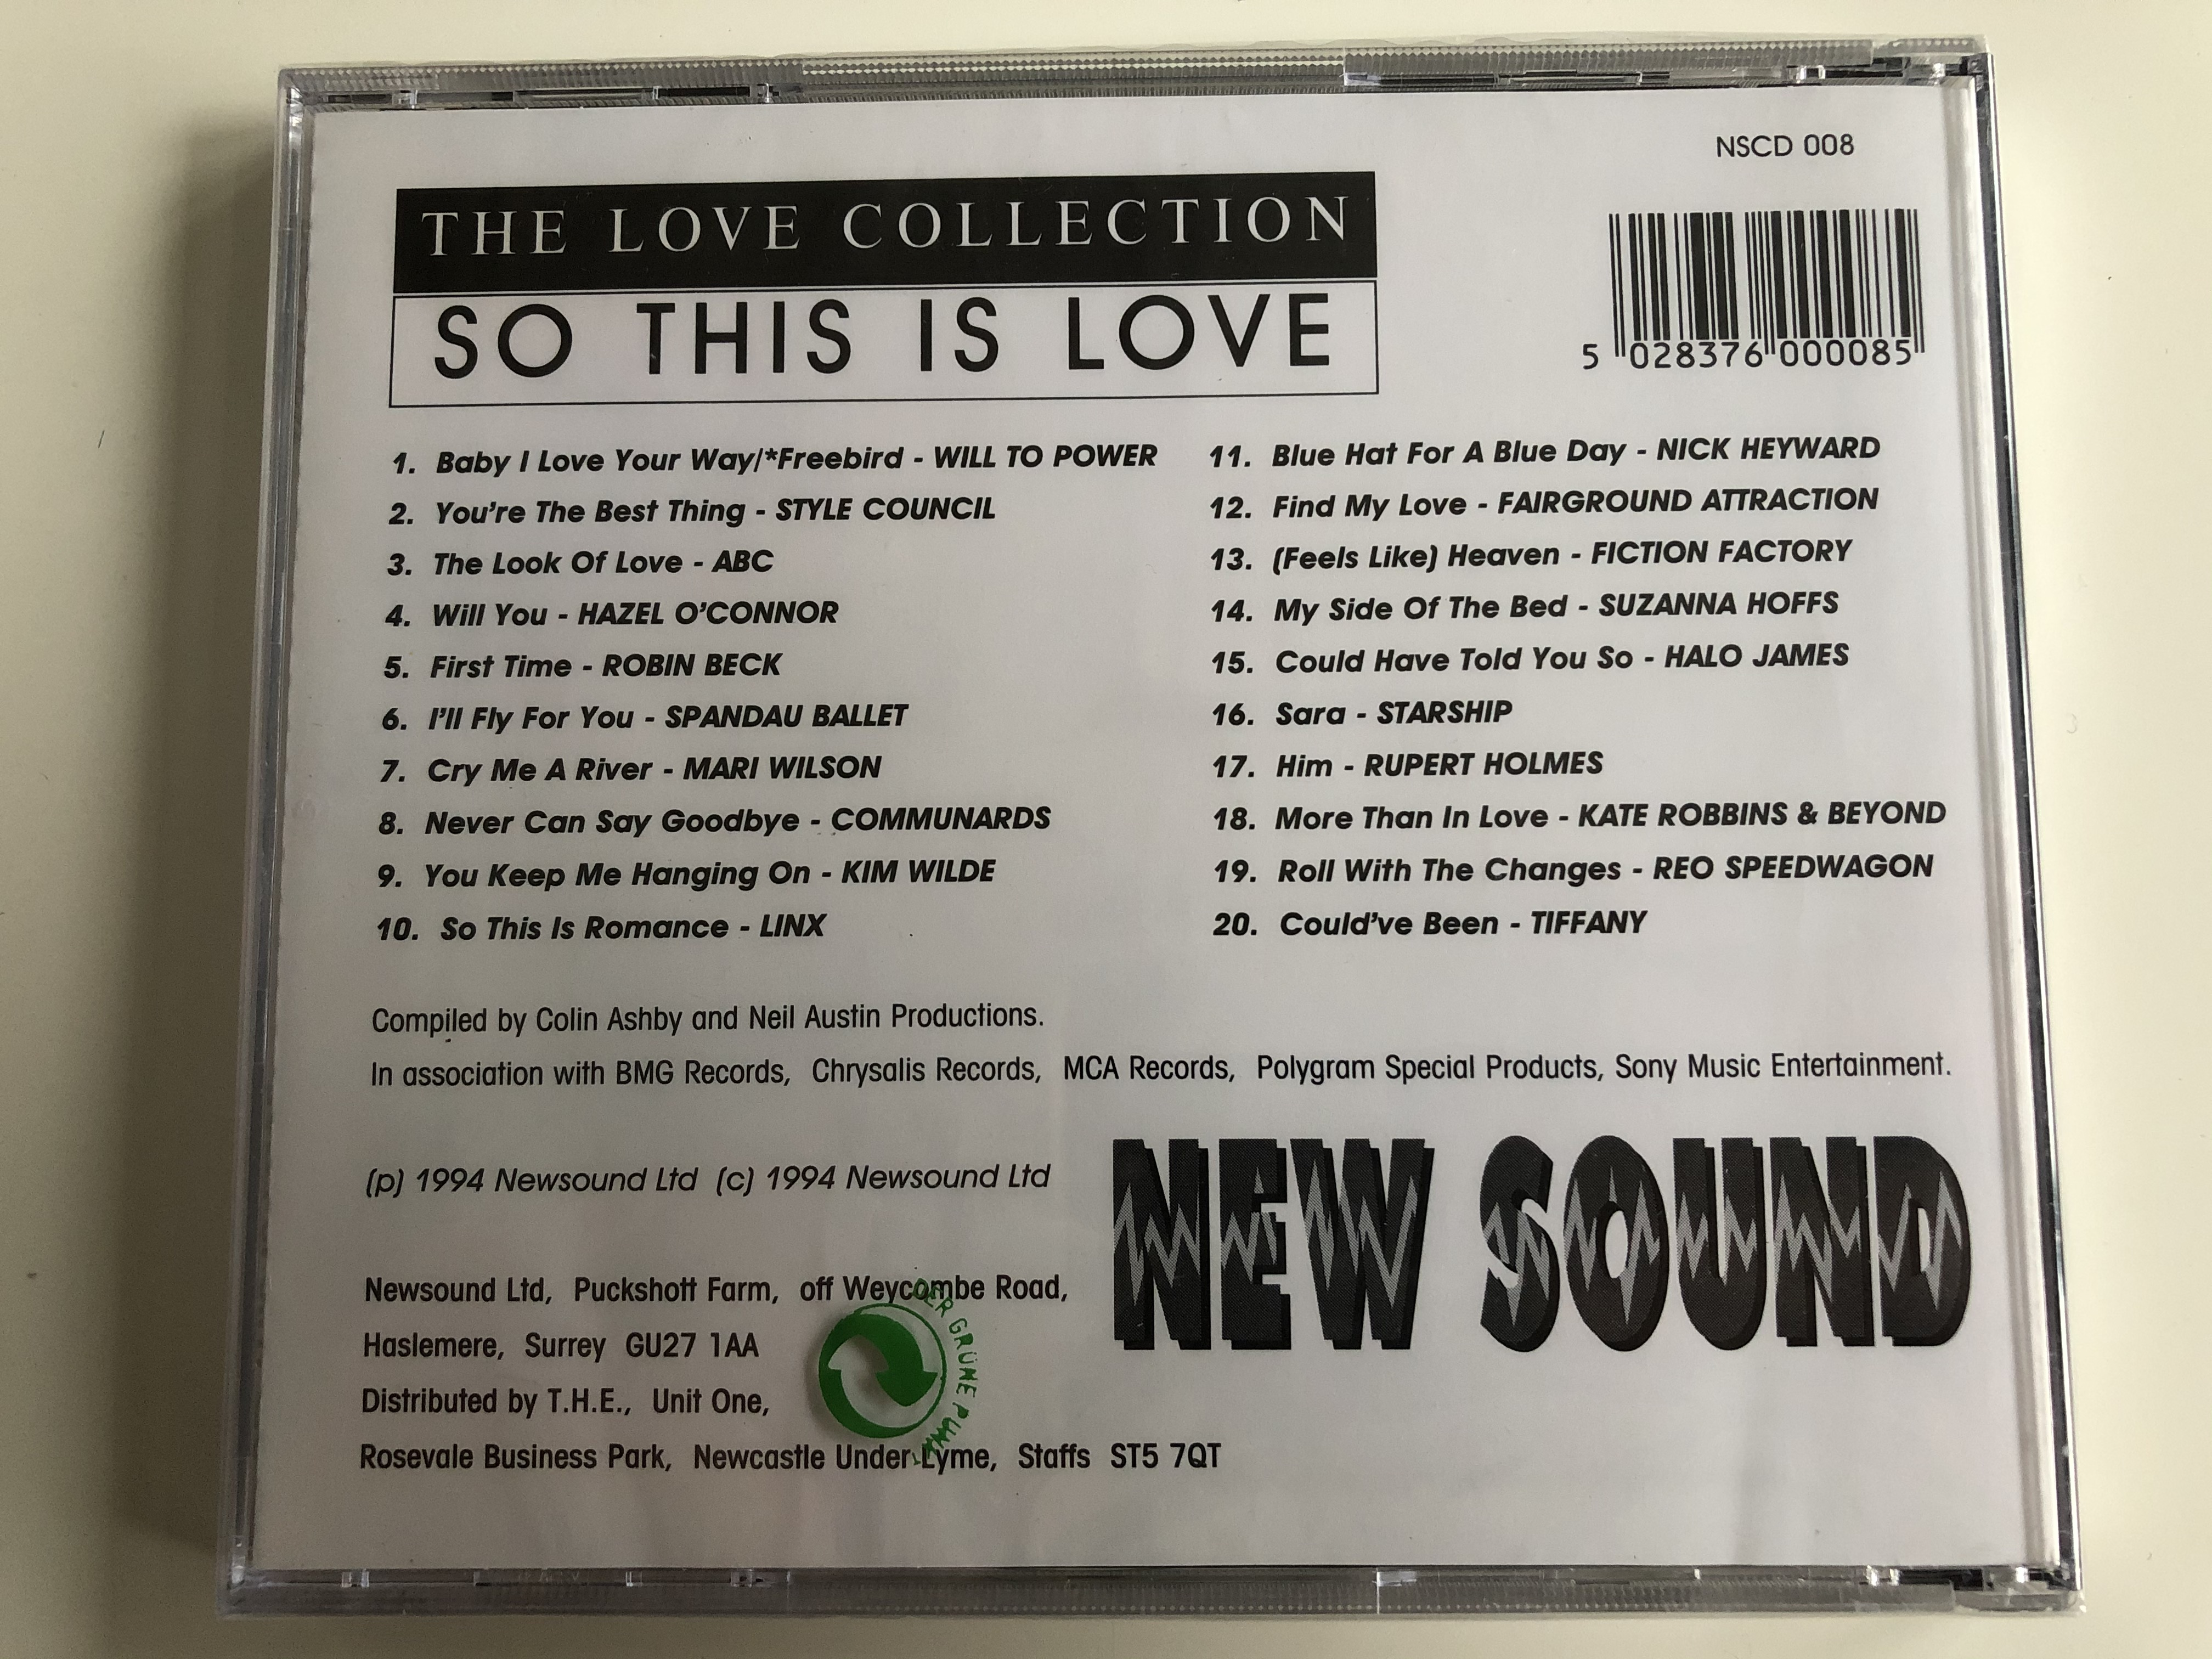 the-love-collection-vol.-3-so-this-is-love-20-great-tracks-original-artists-first-time-robin-beck-baby-i-love-your-way-will-to-power-you-keep-me-hanging-on-kim-wilde-you-re-th.jpg